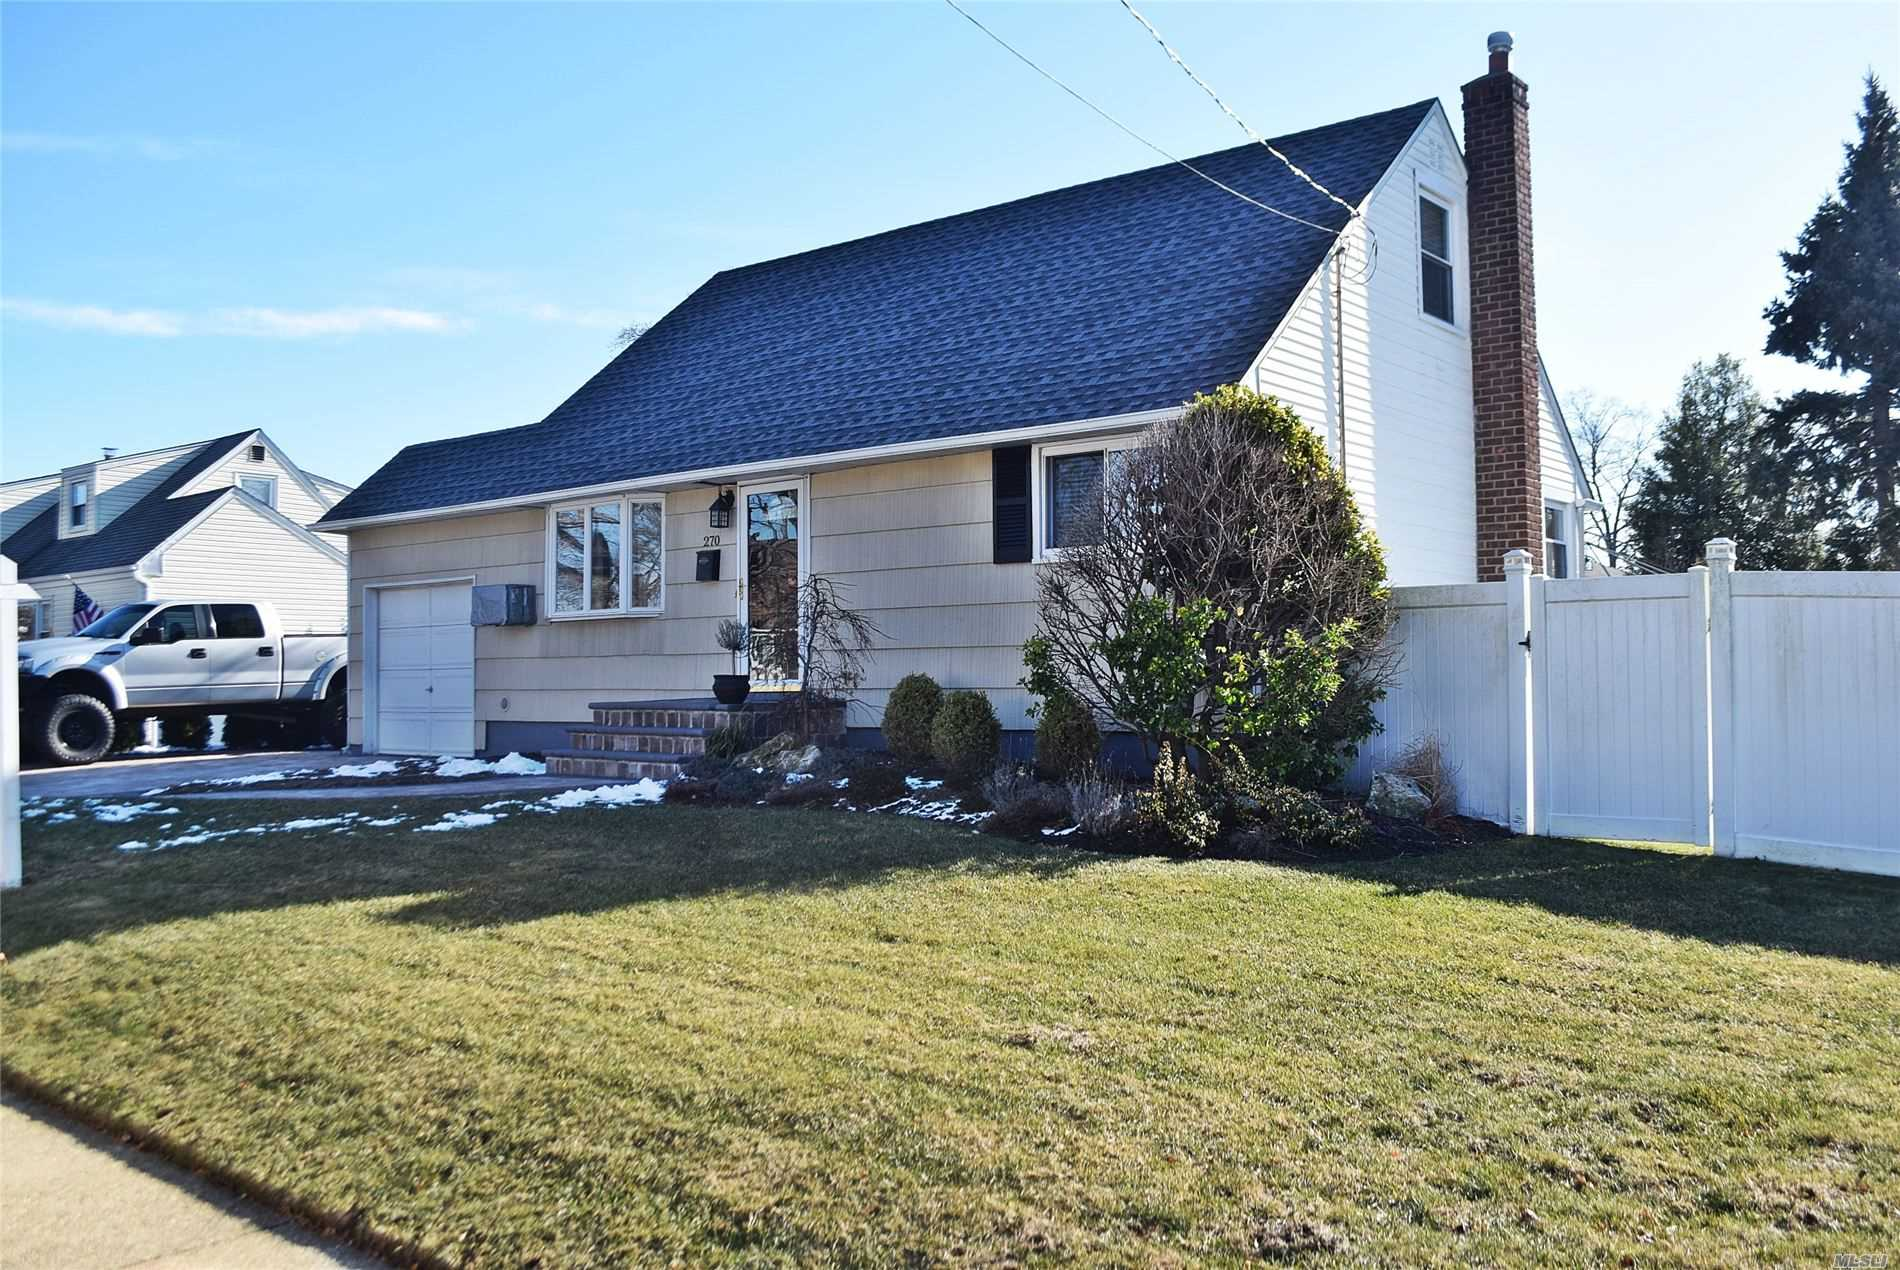 270 N Queens Ave 11758 - One of Massapequa Homes for Sale